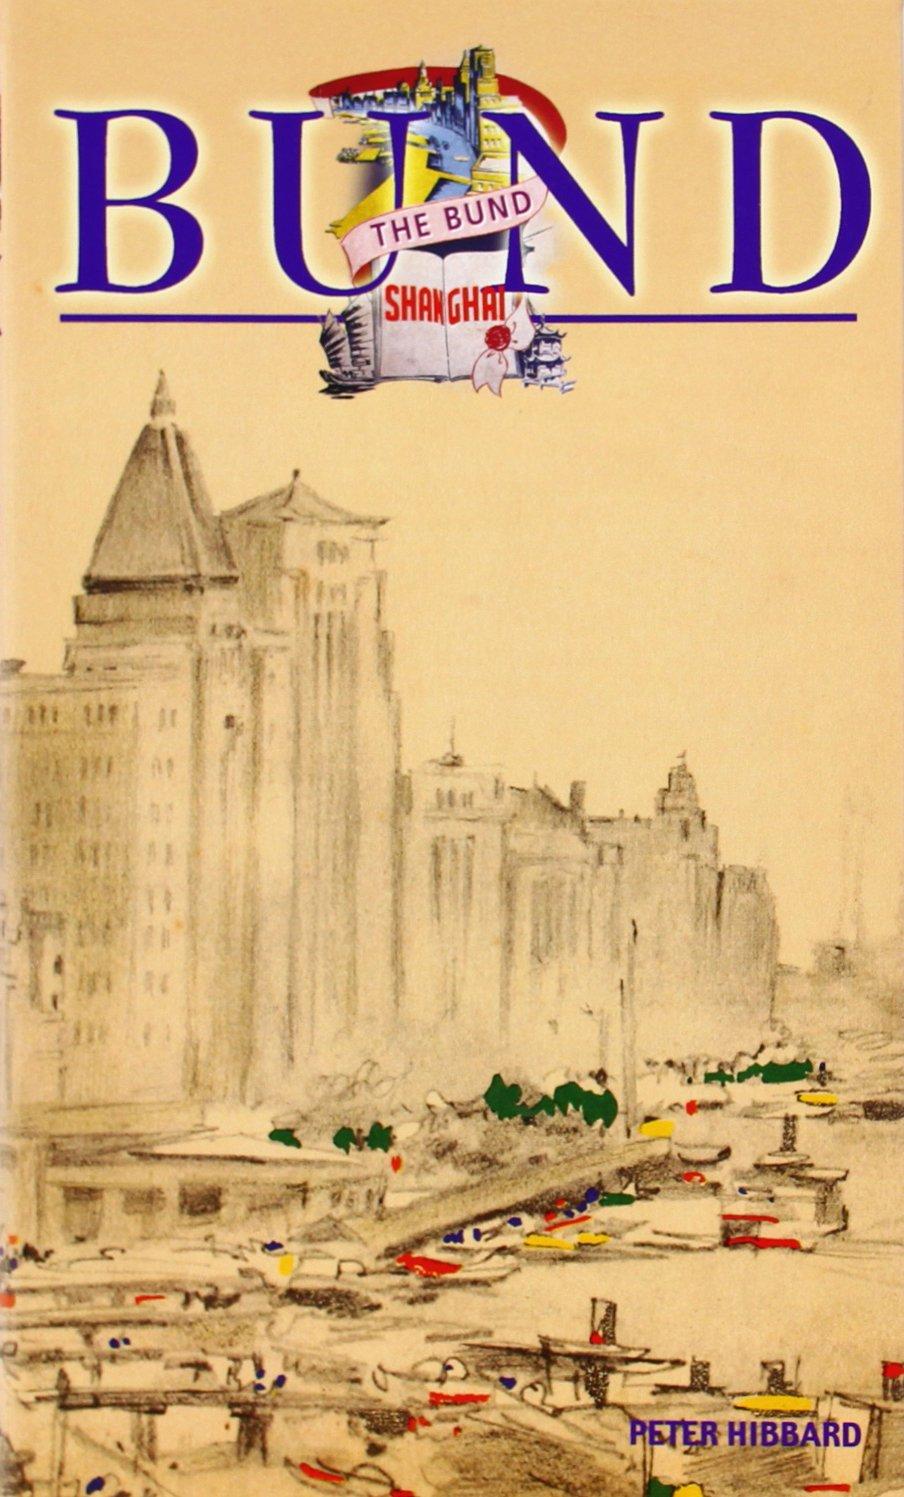 The Bund Shanghai: China Faces West (Odyssey Illustrated Guides): Peter  Hibbard: 9789622177727: Amazon.com: Books